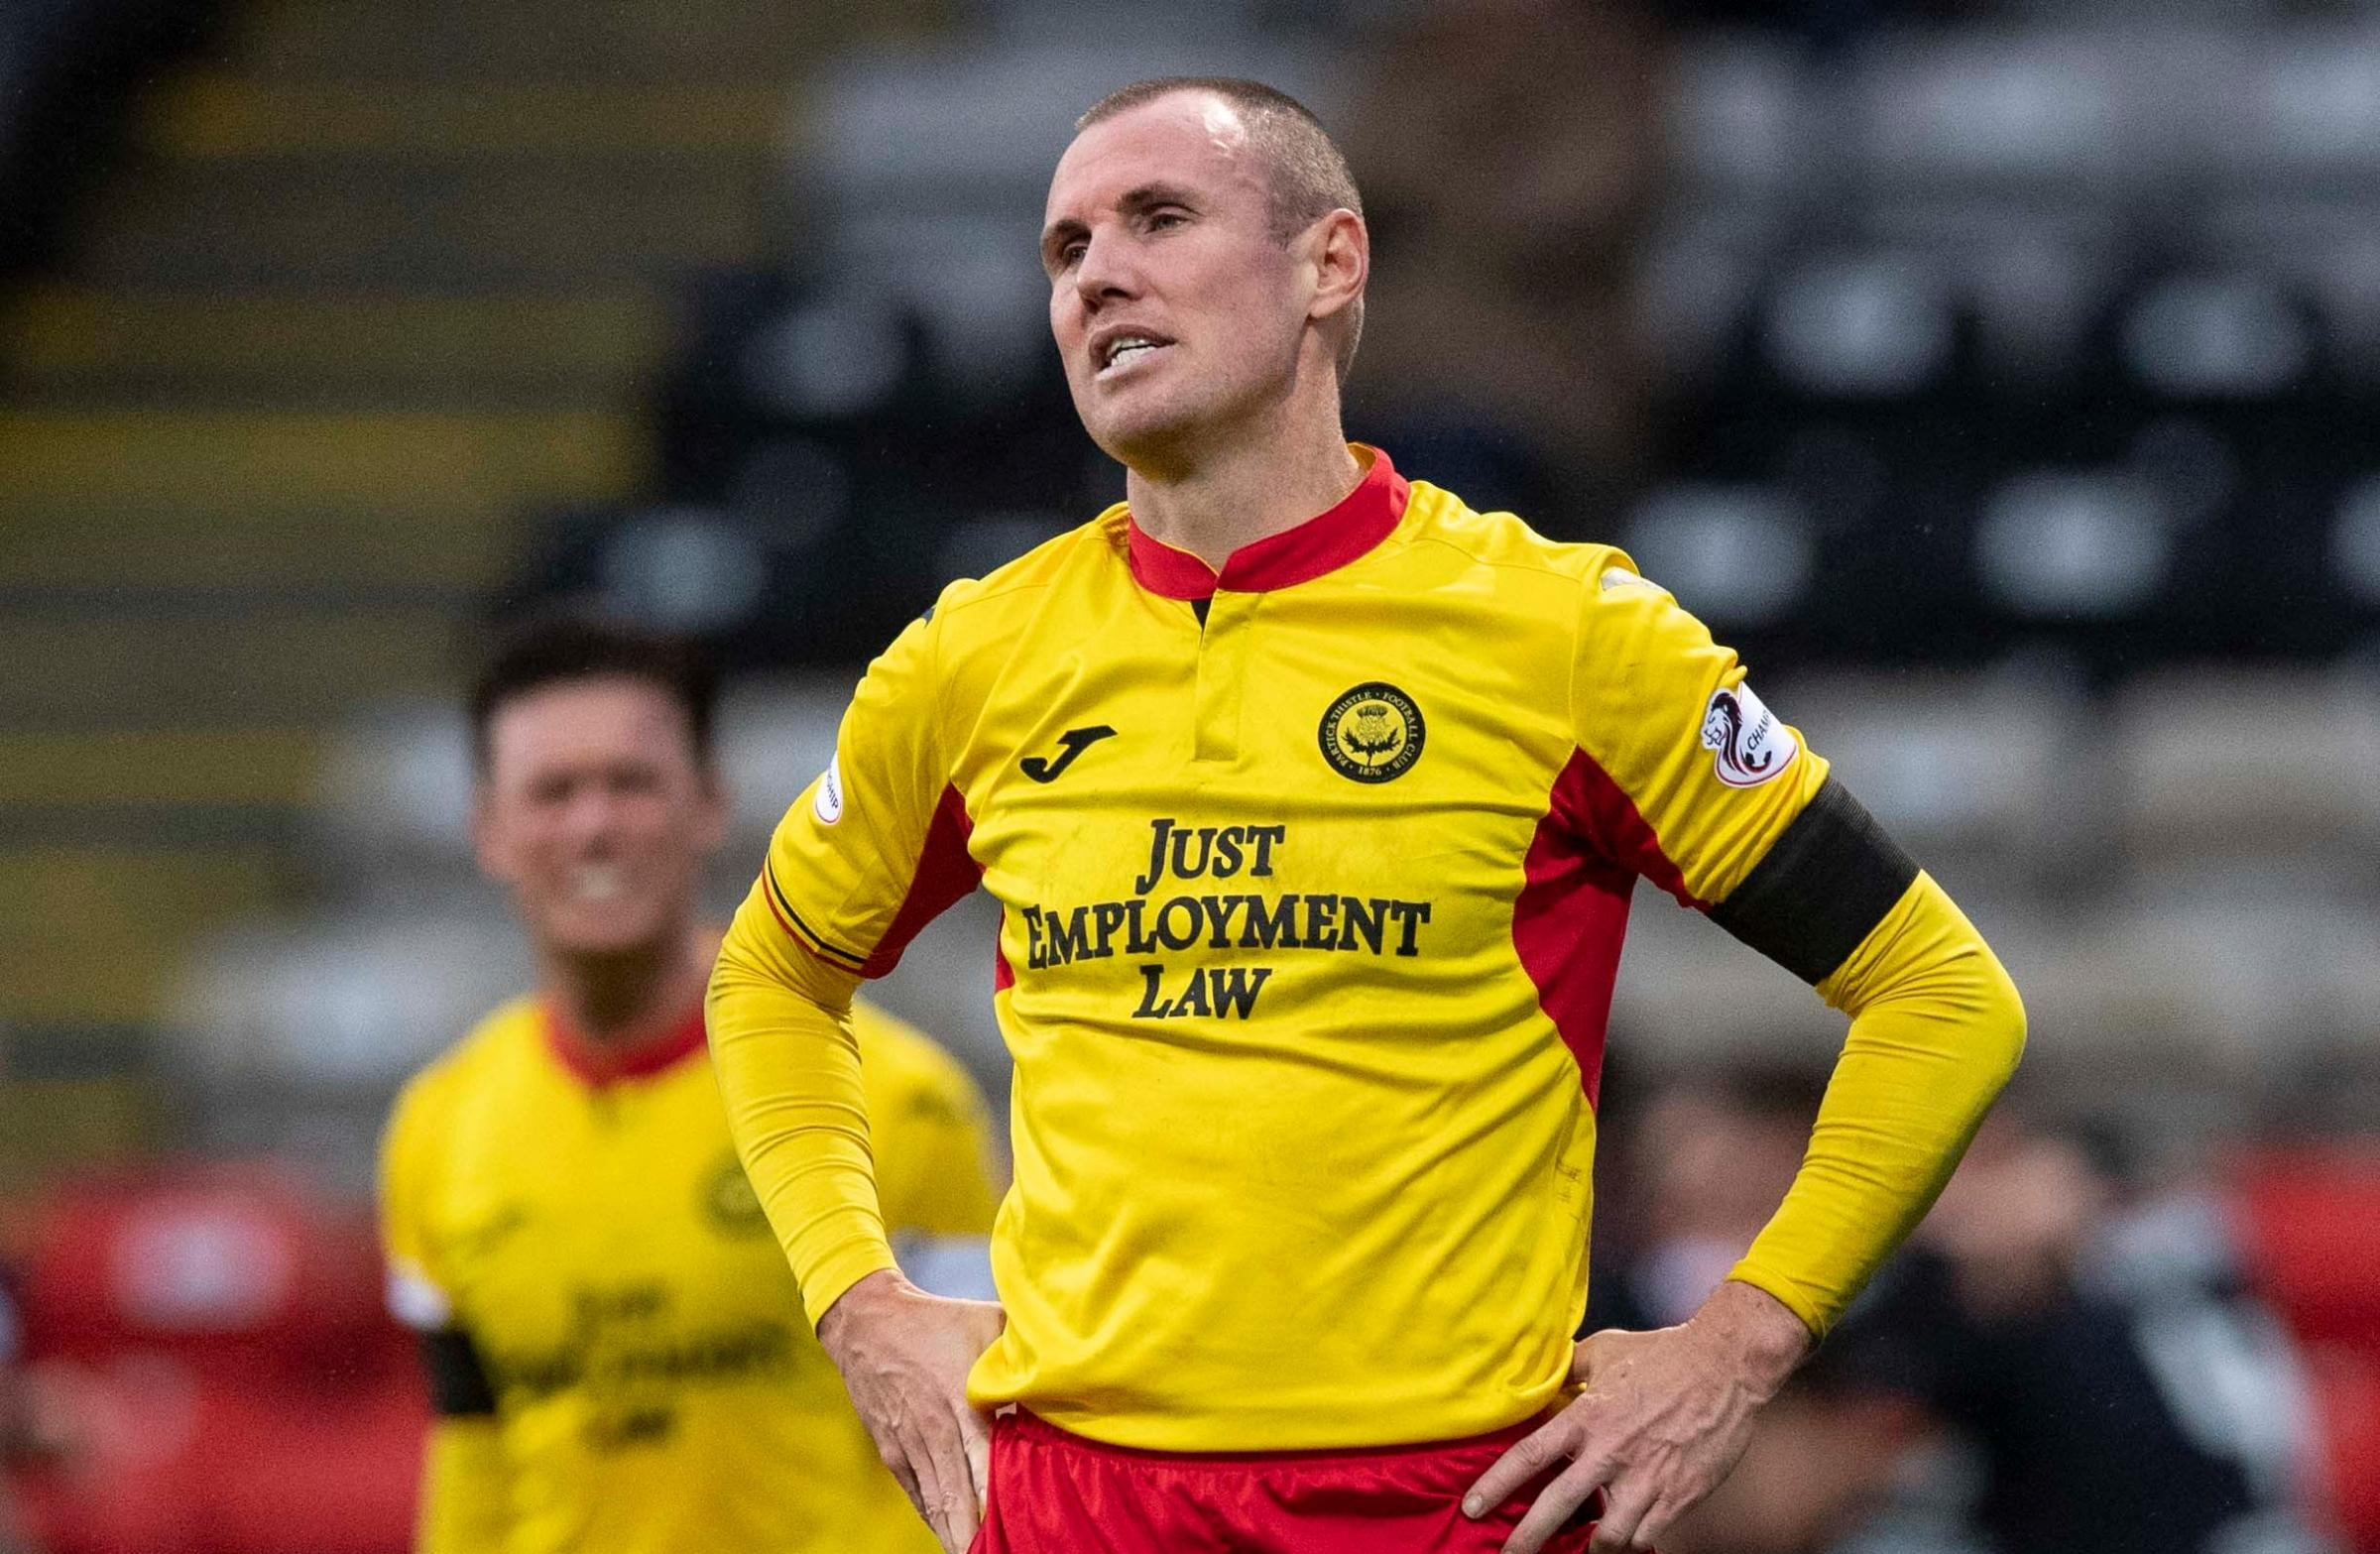 Kenny Miller leaves Partick Thistle by mutual consent